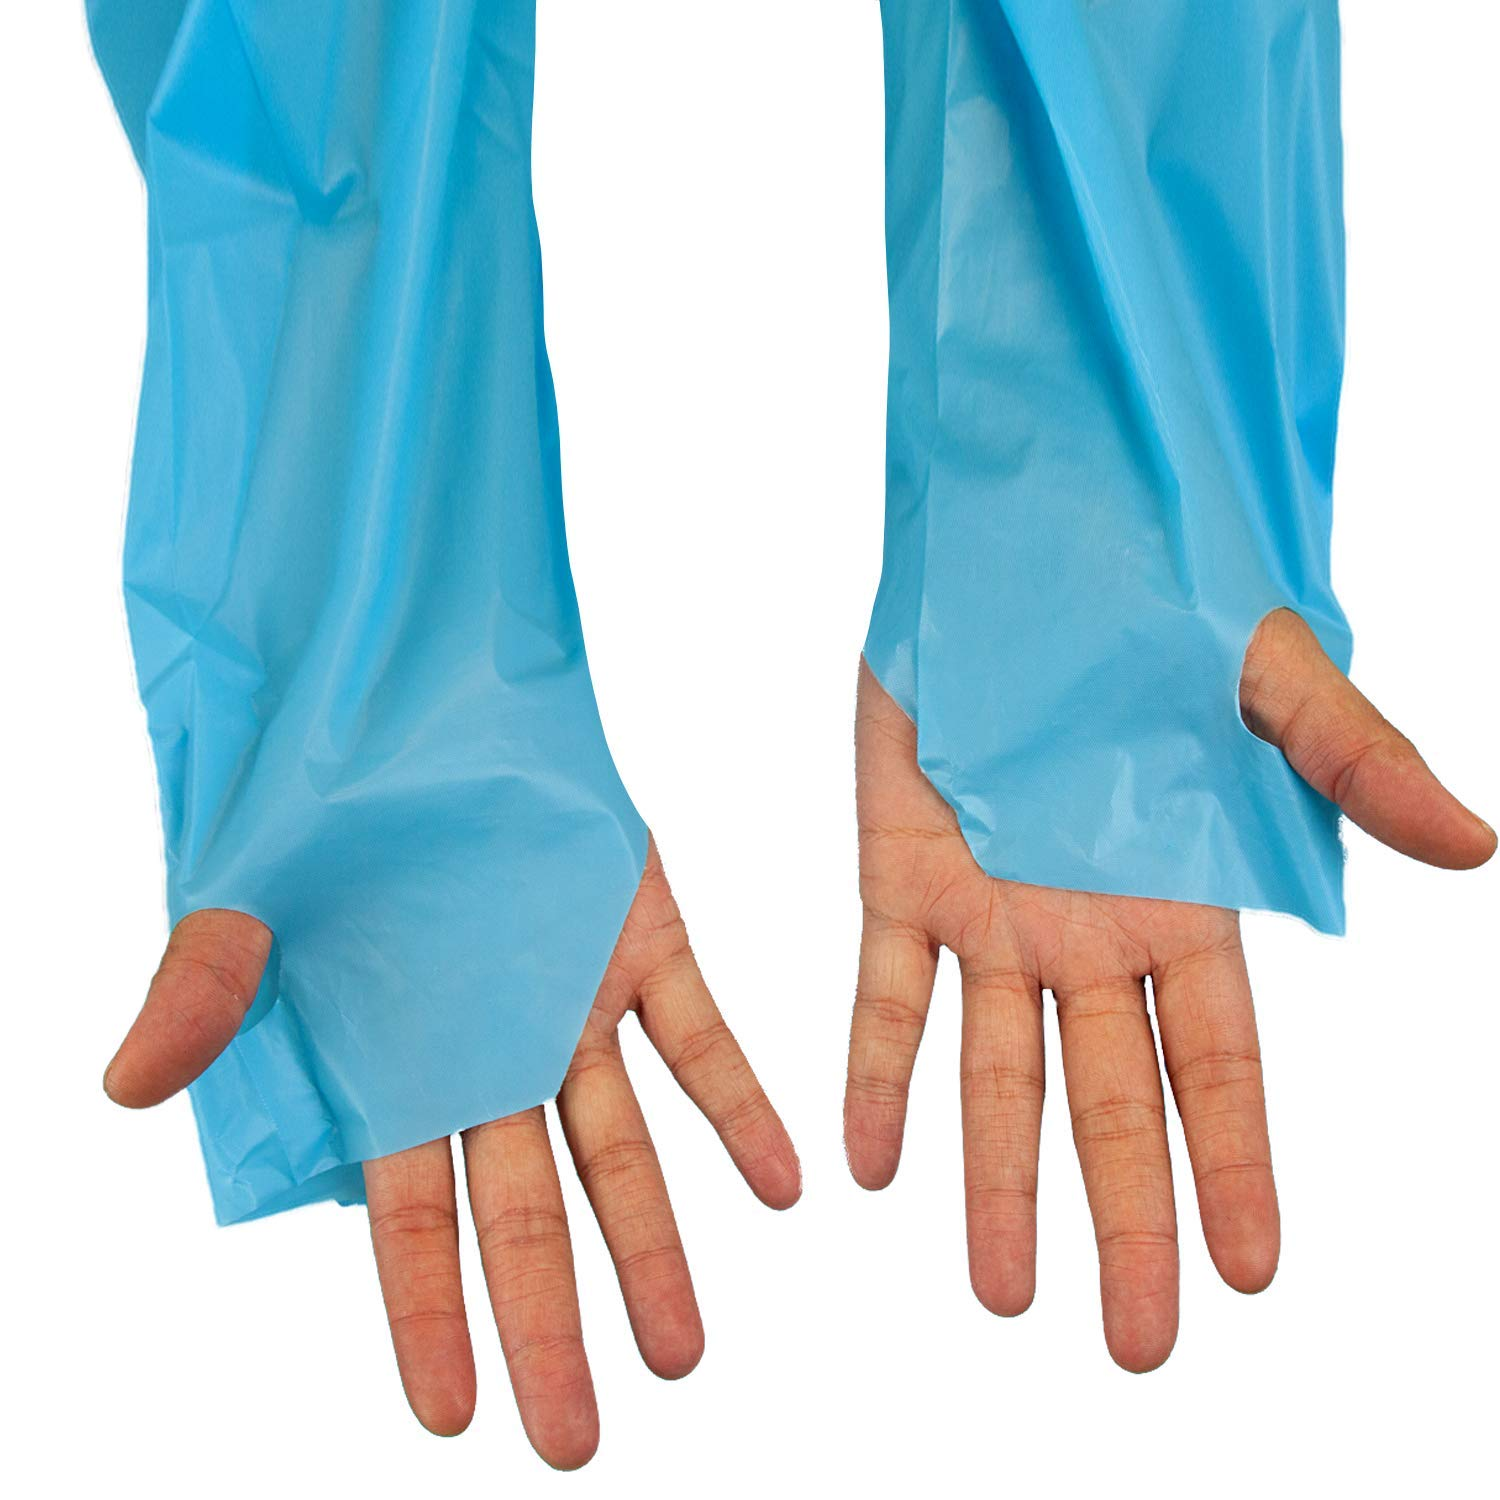 SAFE HANDLER Disposable Sleeve Gown | Open Back with Thumb Loops, 0.5 MIL, Blue, 100 Count by Safe Handler (Image #4)